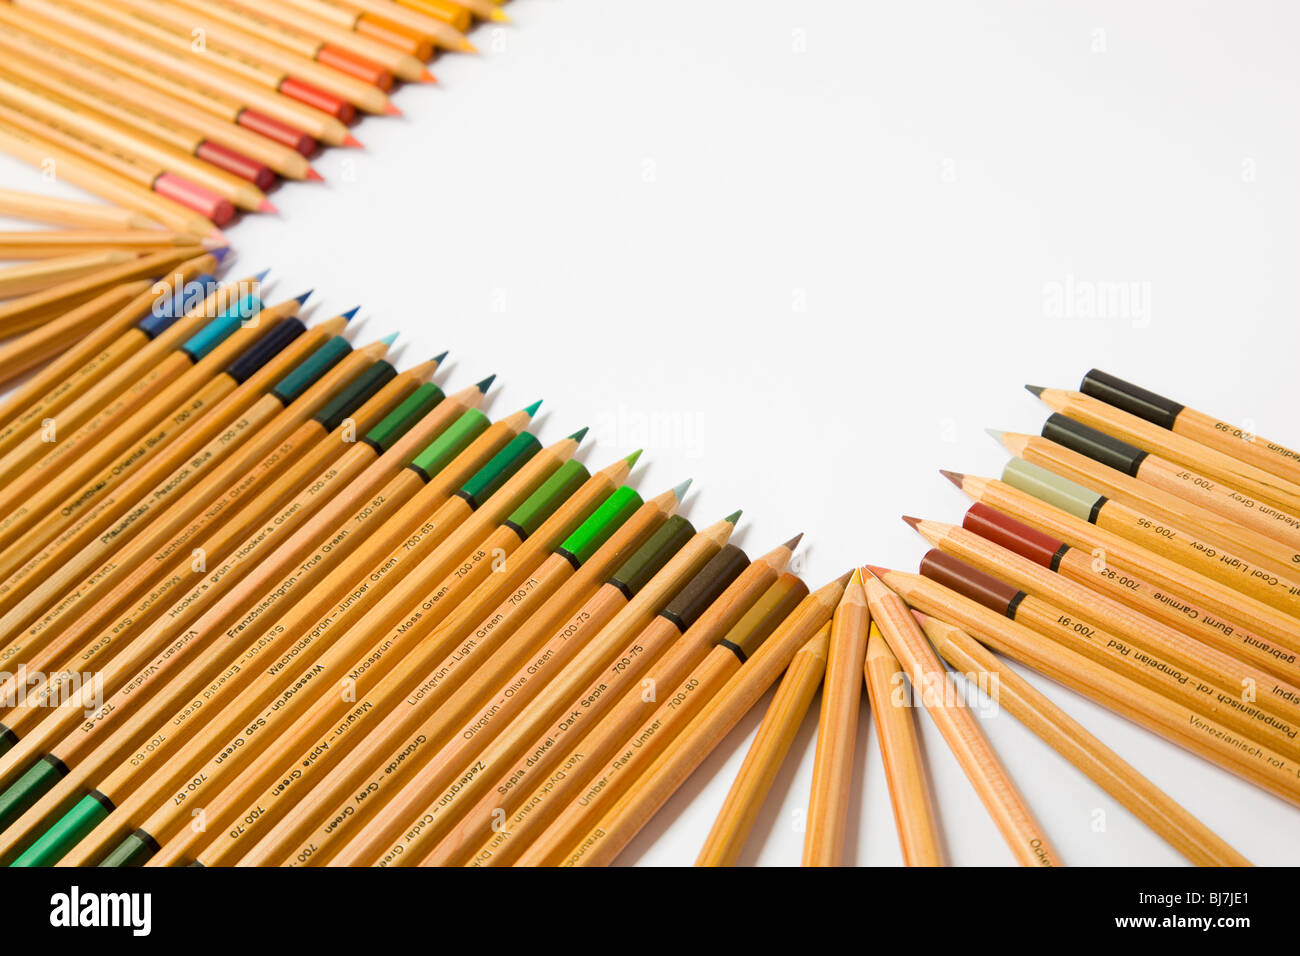 Oblique composition with colored pencils - Stock Image